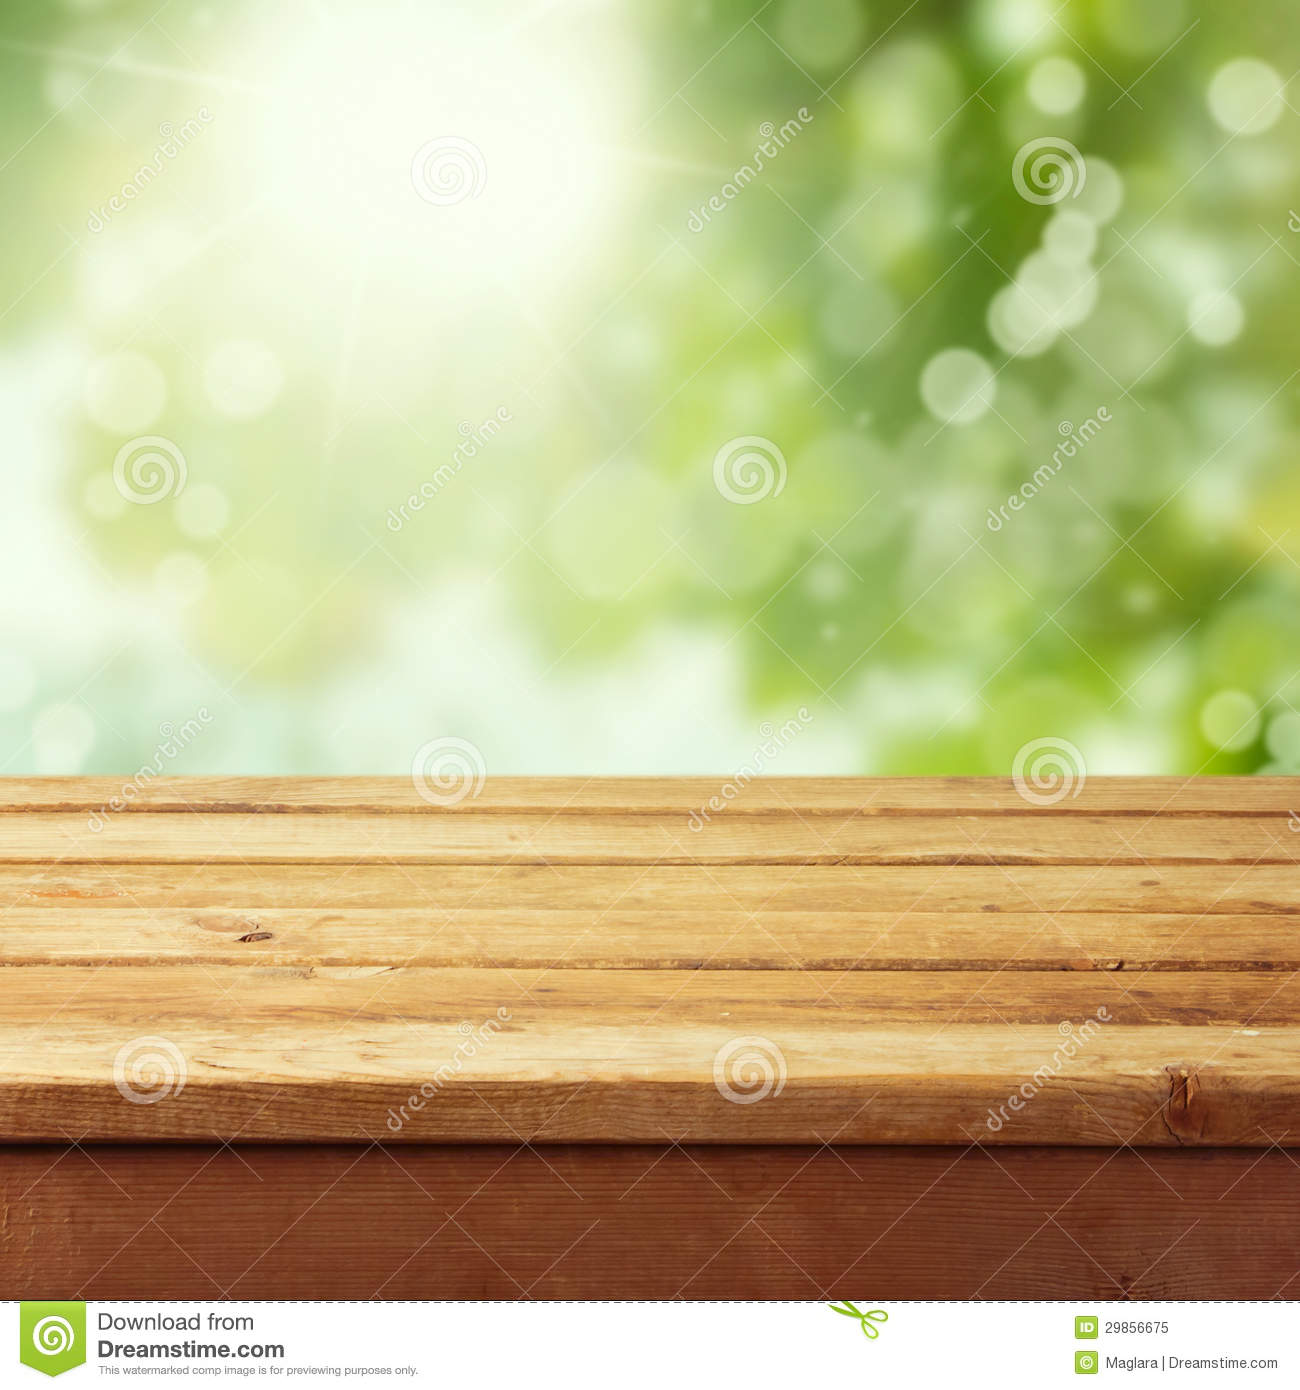 Empty Wooden Deck Table With Foliage Bokeh Stock Image